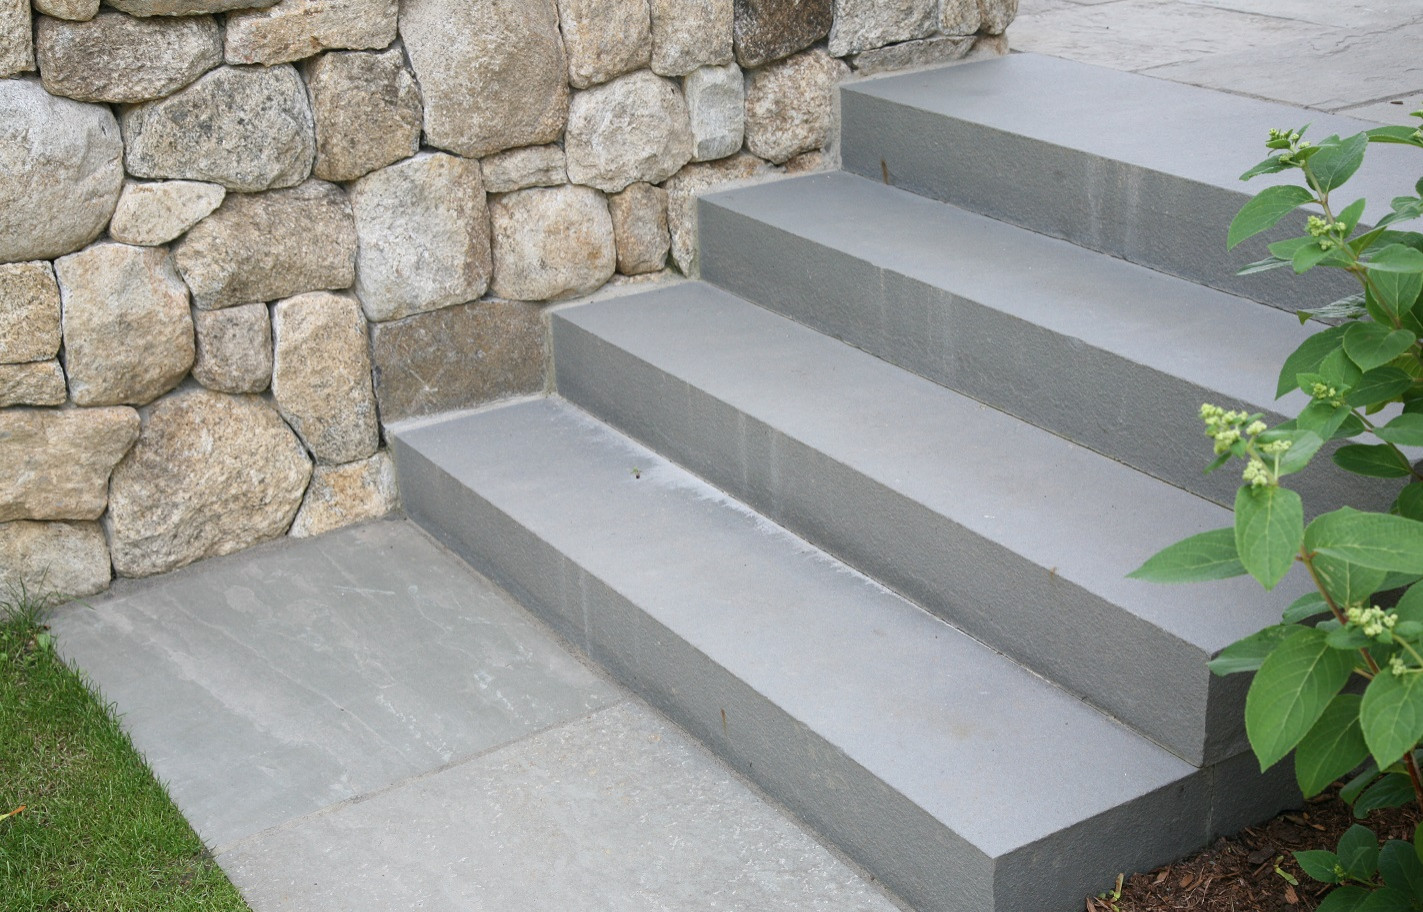 Enduring materials of solid bluestone steps and fieldstone foundation